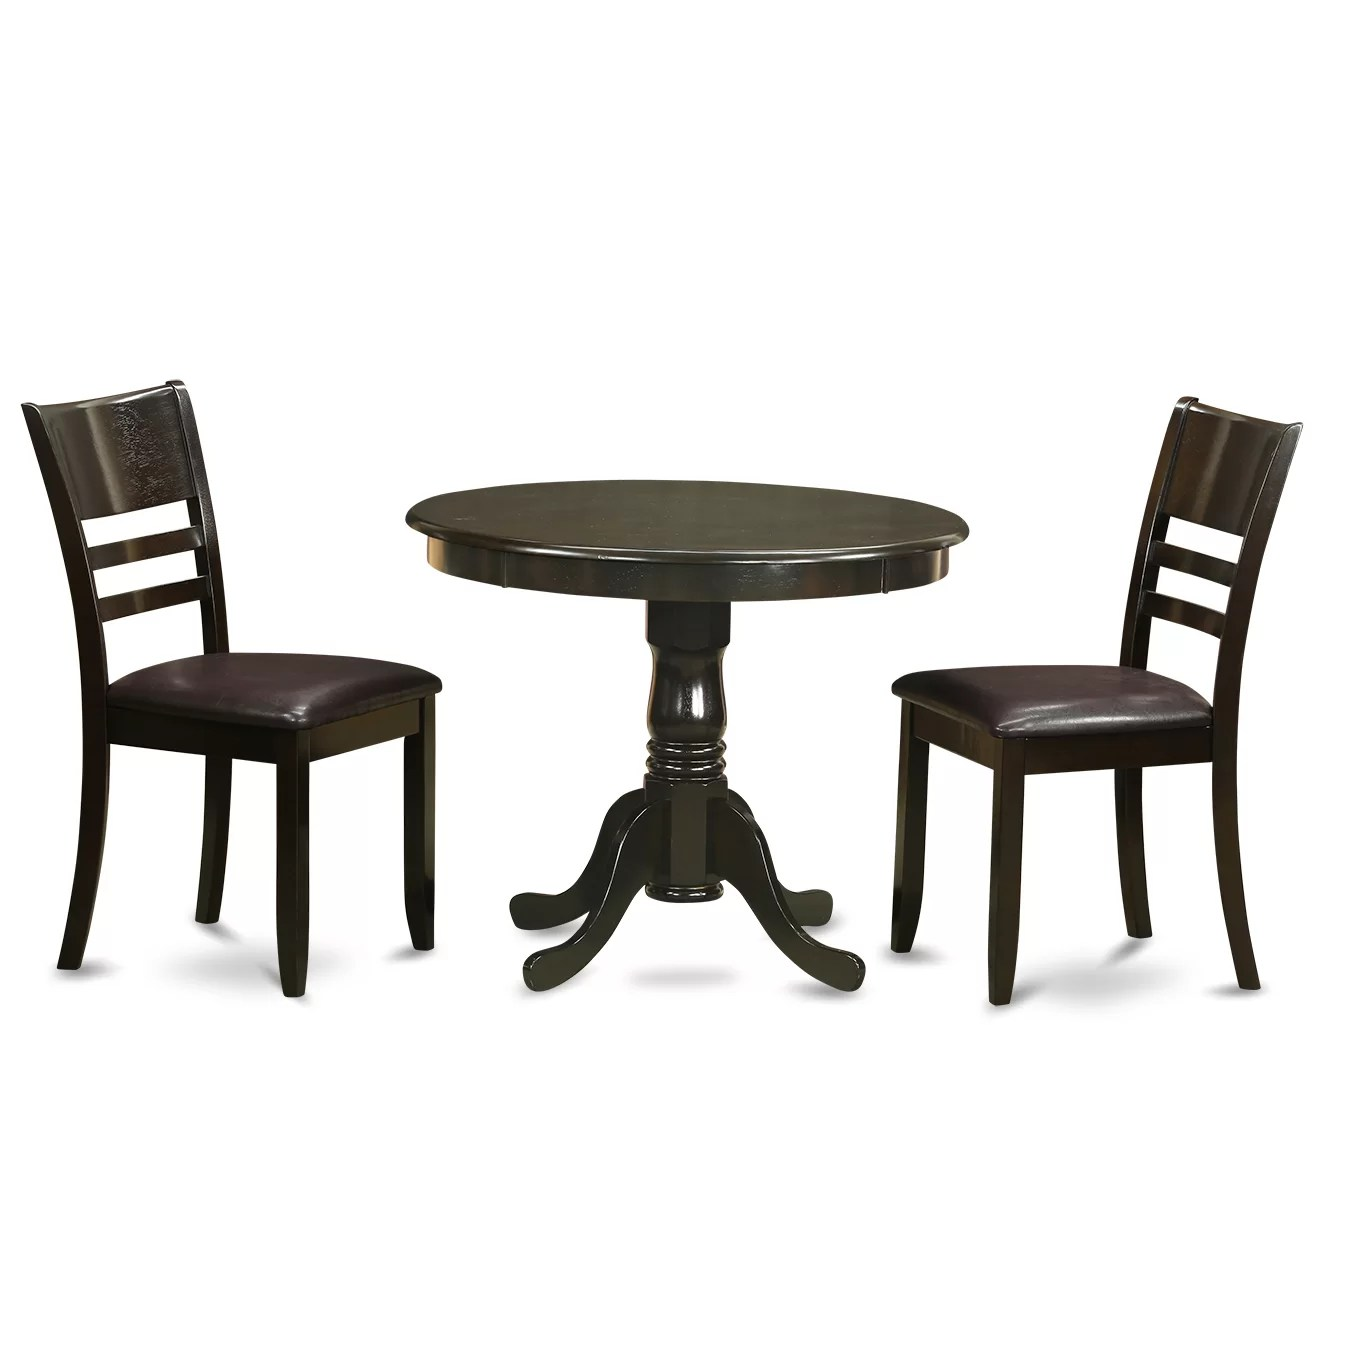 Round Kitchen Table And Chairs Set Wooden Importers 3 Piece Dining Set Wayfair